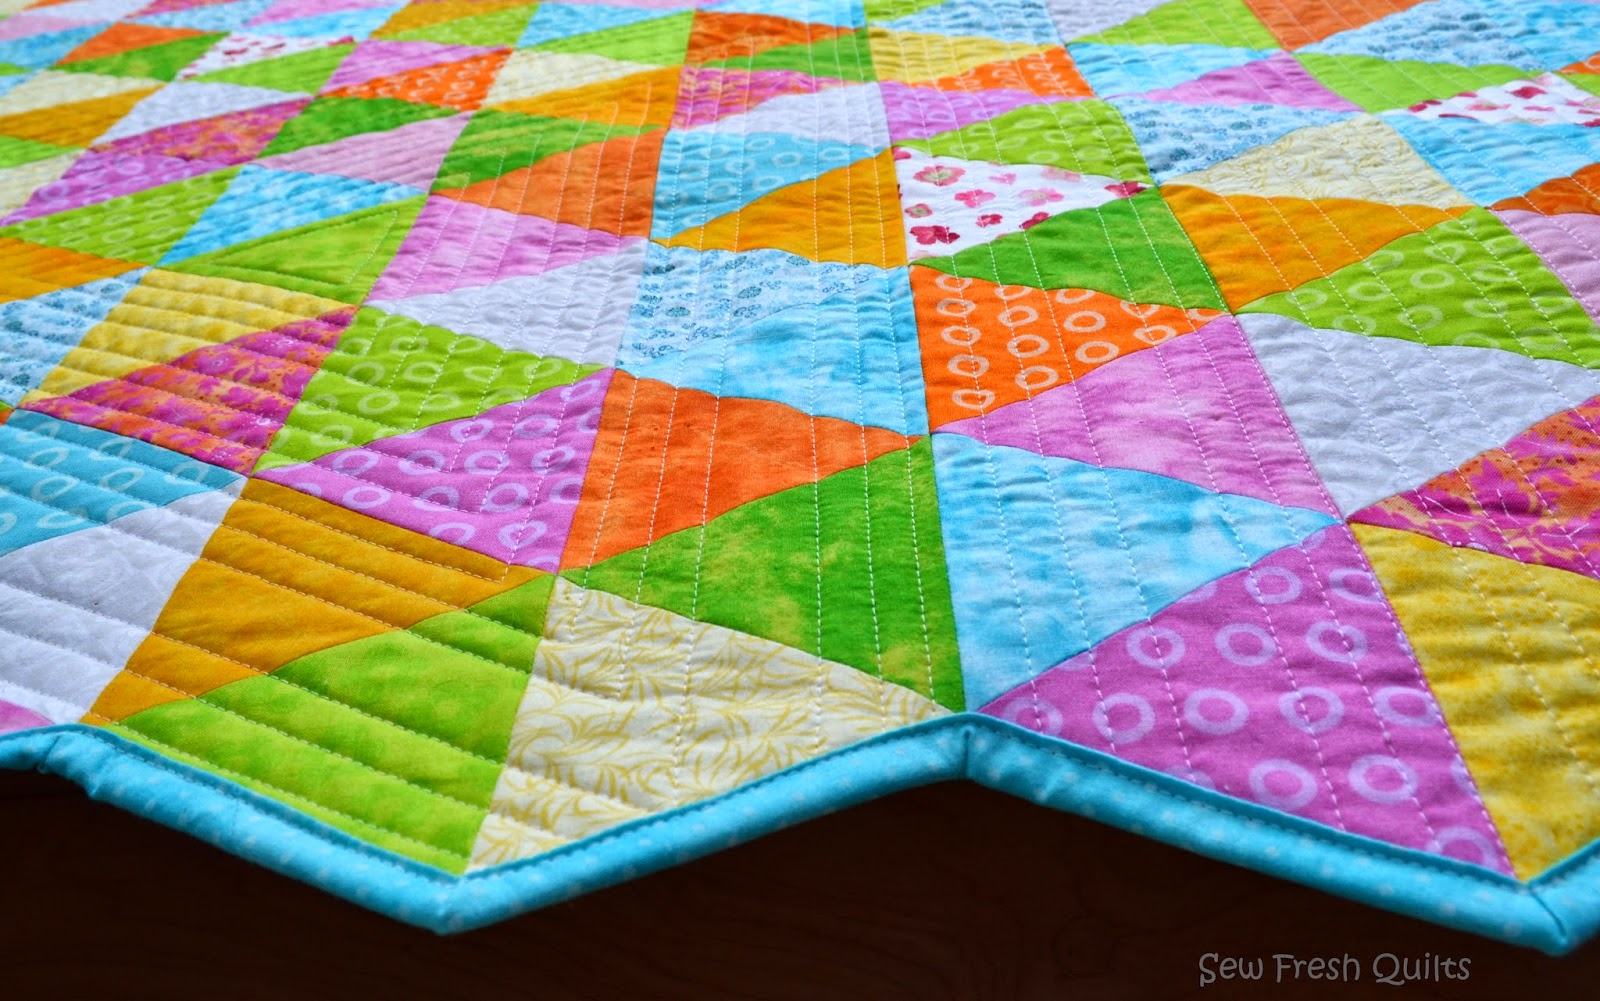 Sew Fresh Quilts: Equilateral Triangle Quilt - Finished! : how to quilt triangles - Adamdwight.com